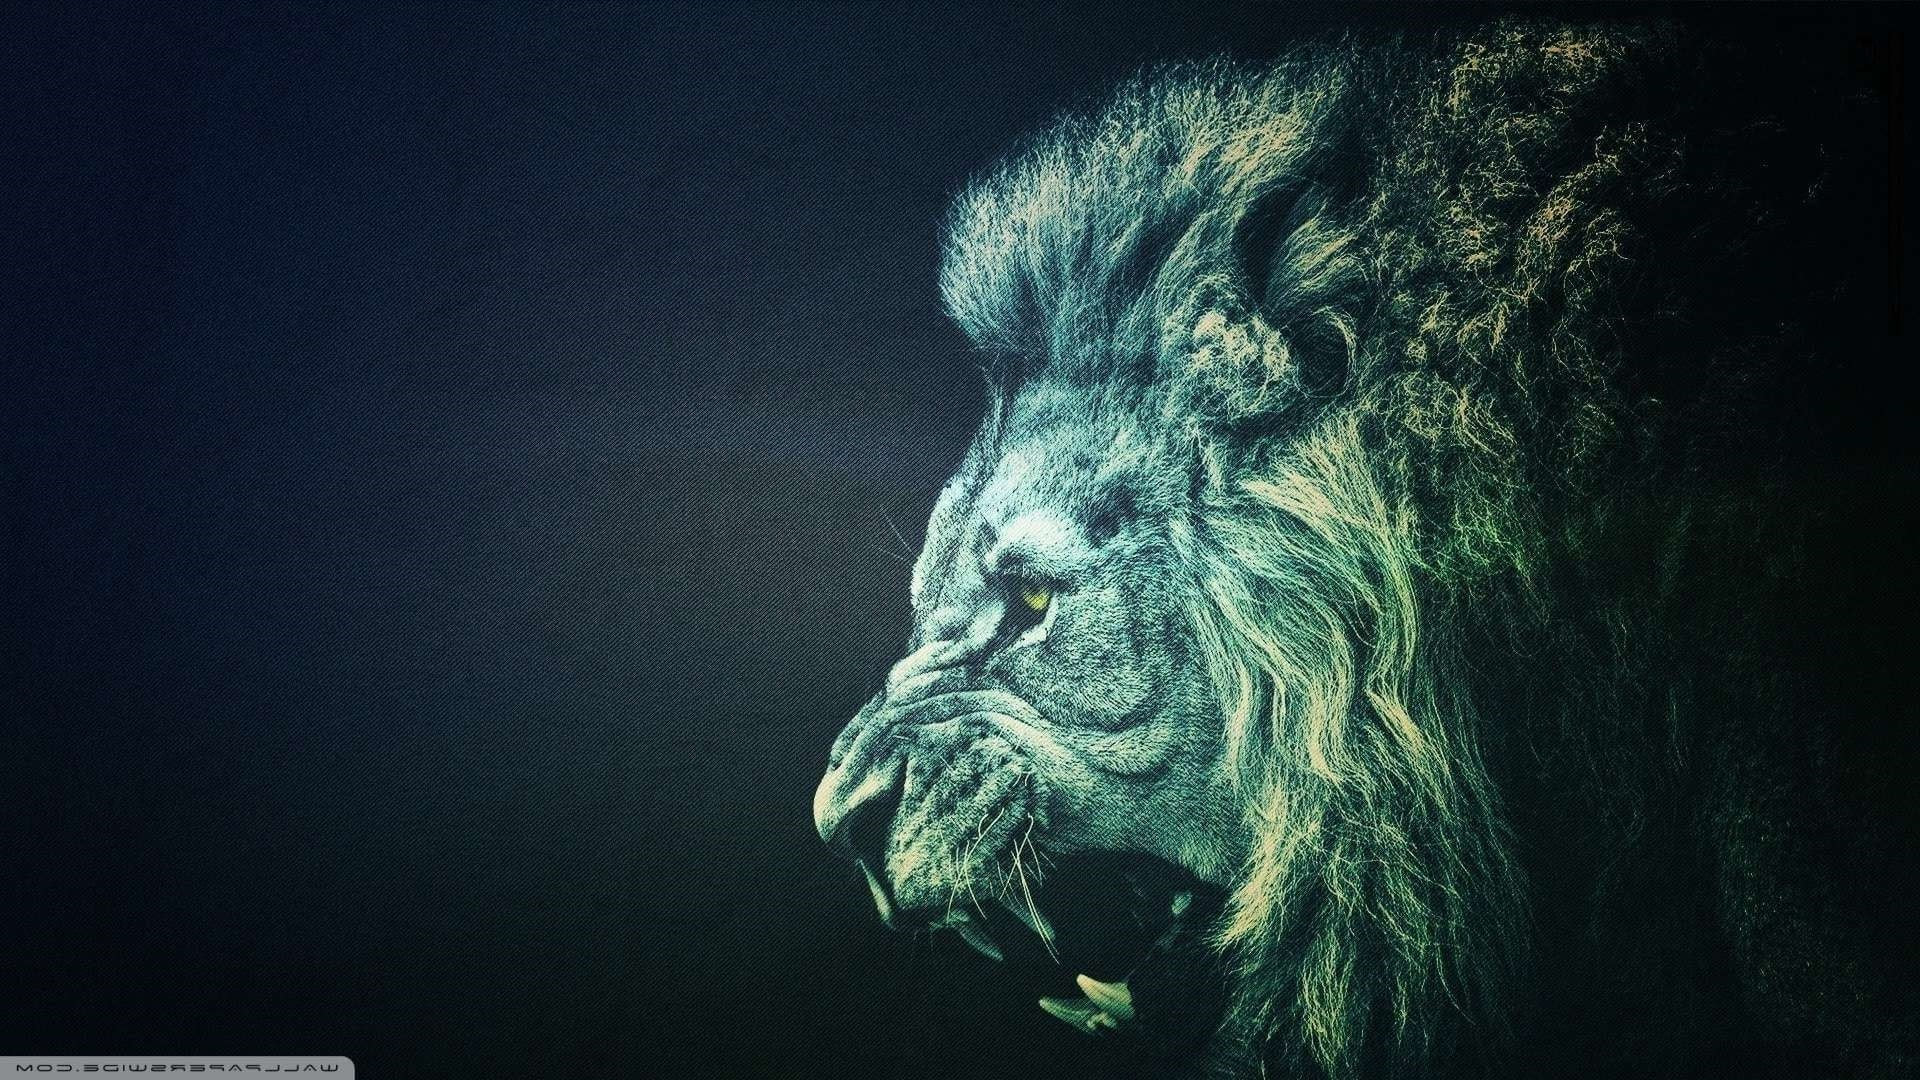 Roaring Lion Wallpaper 67  images